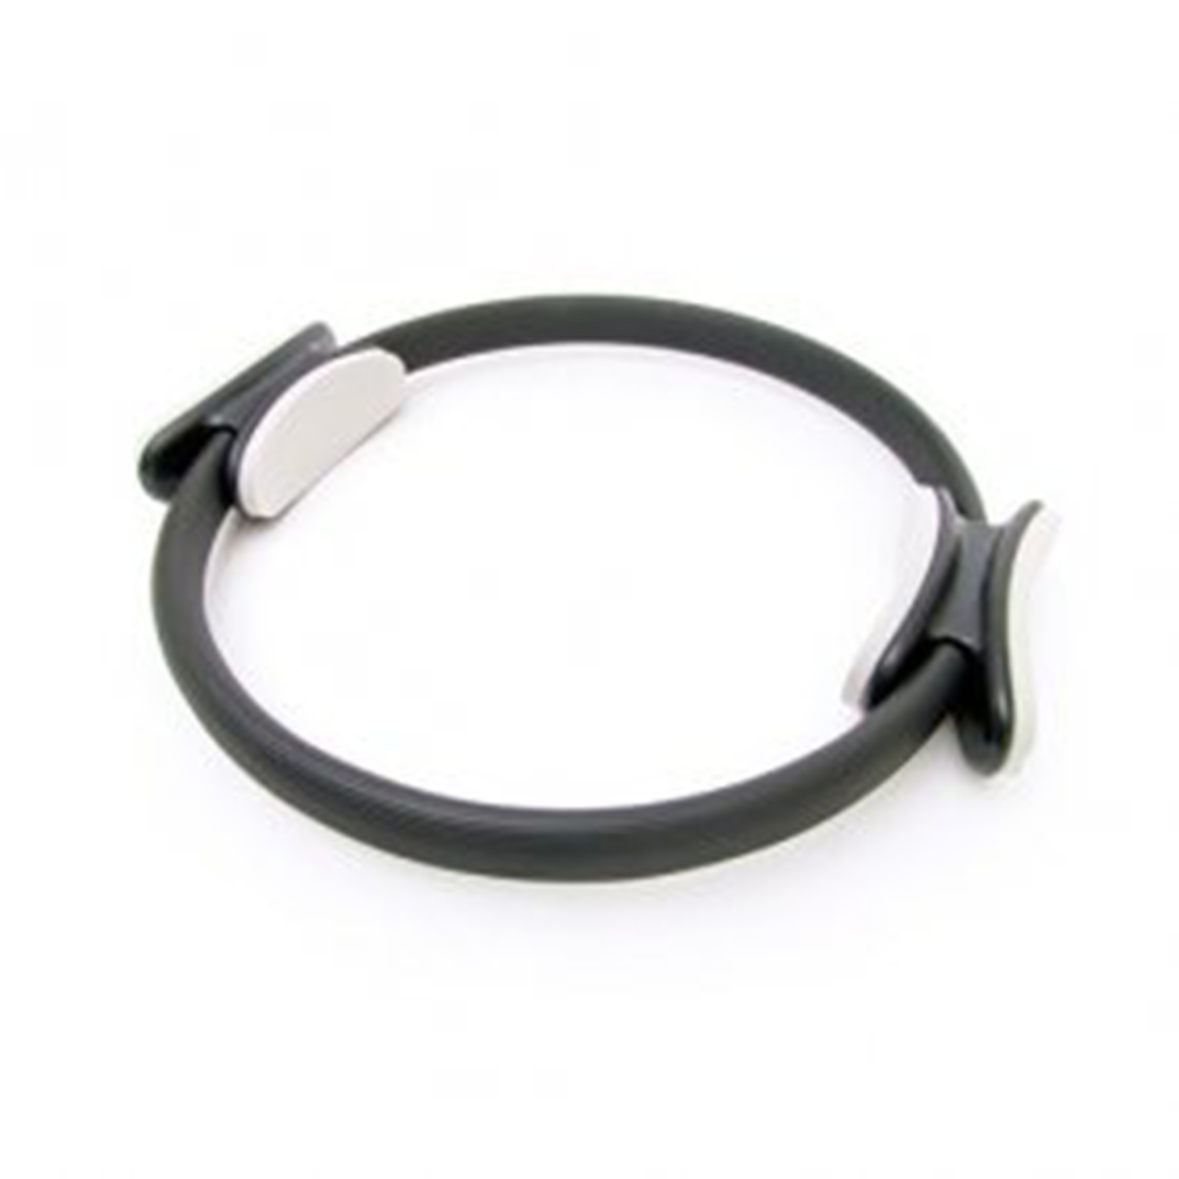 Pilates Double Handle Ring D8 Fitness D8 Fitness